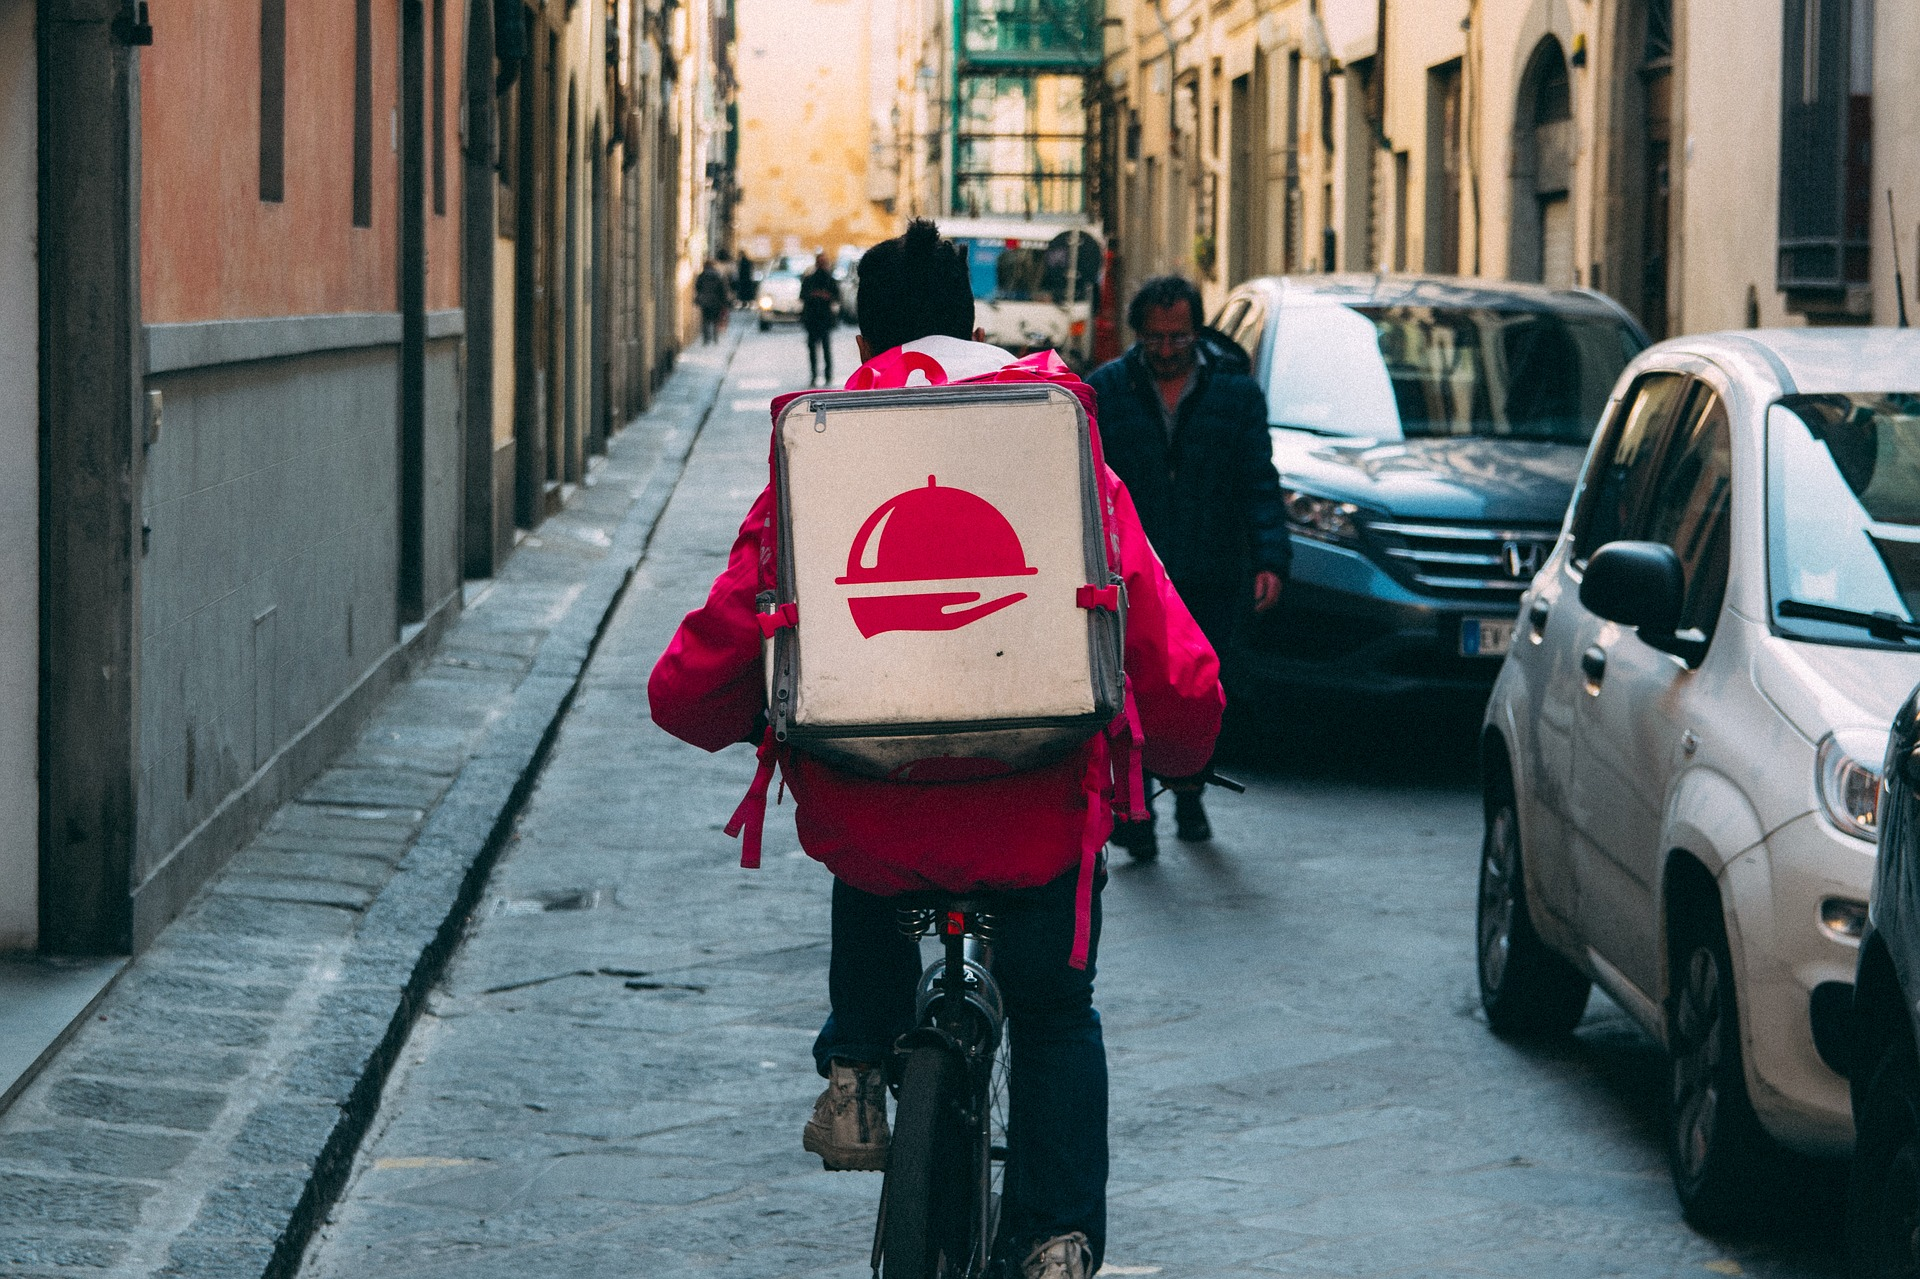 alibaba food delivery connected cars